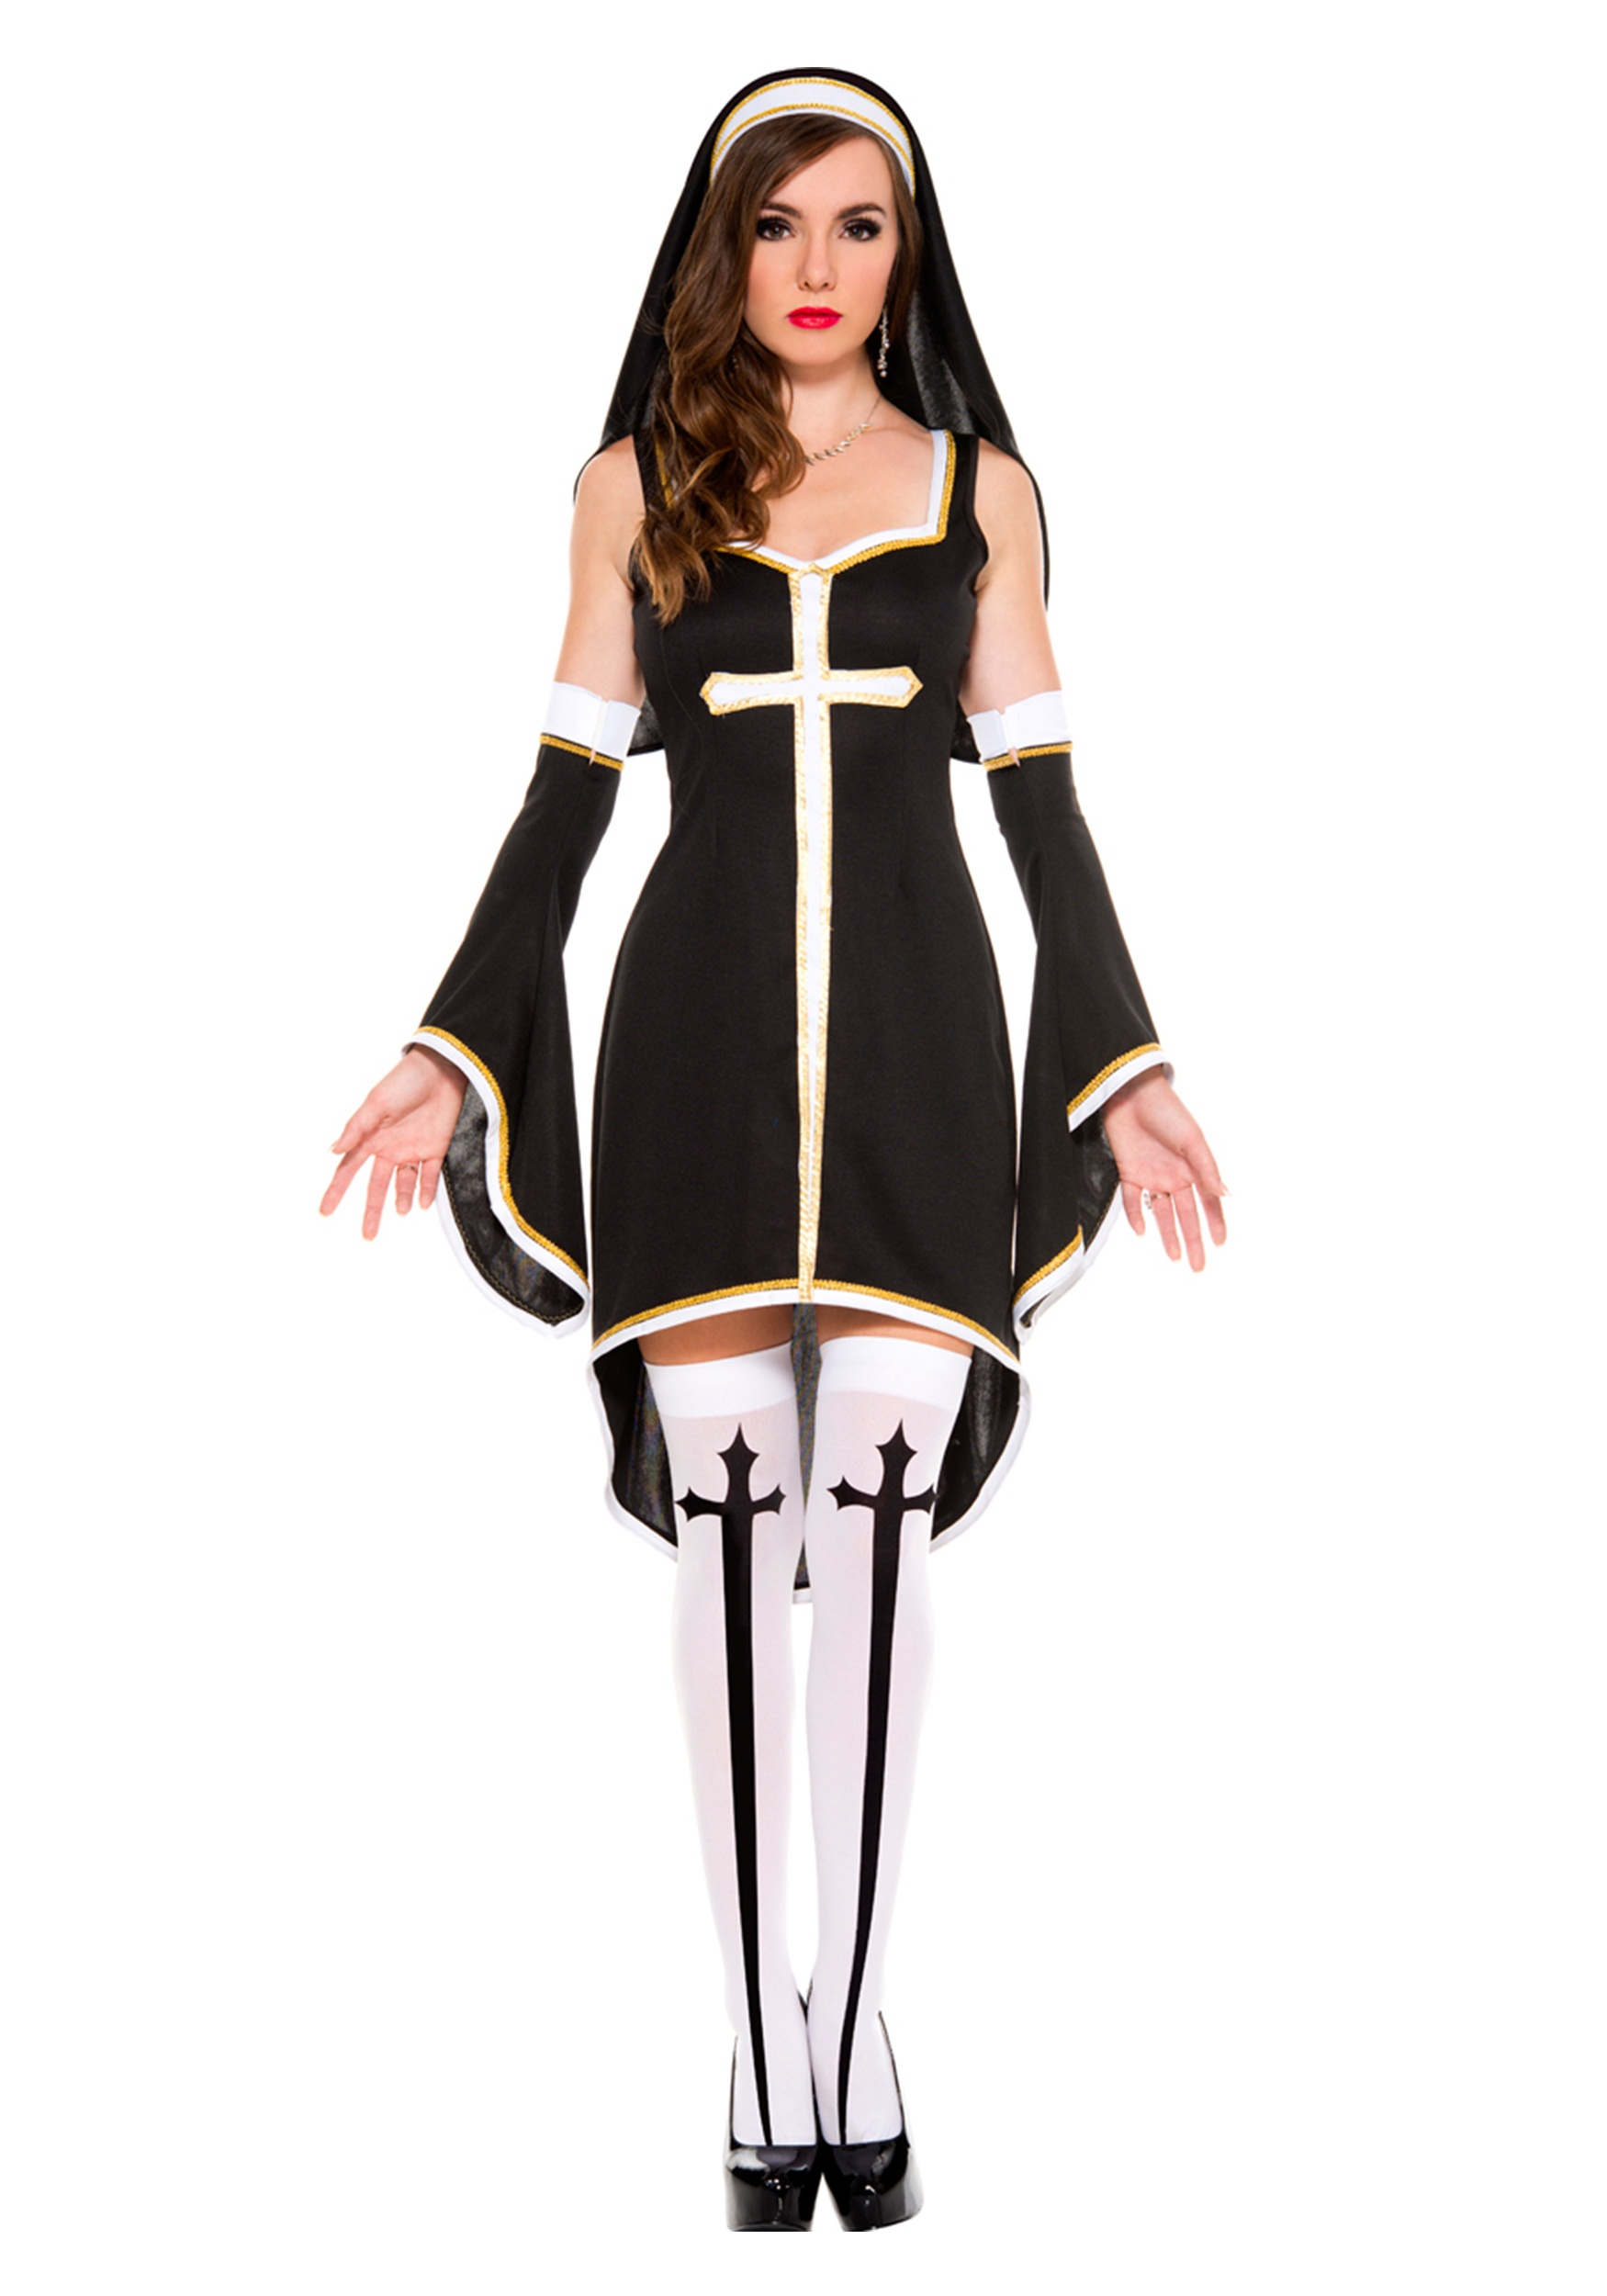 Women Sinfully Hot Nun Costume